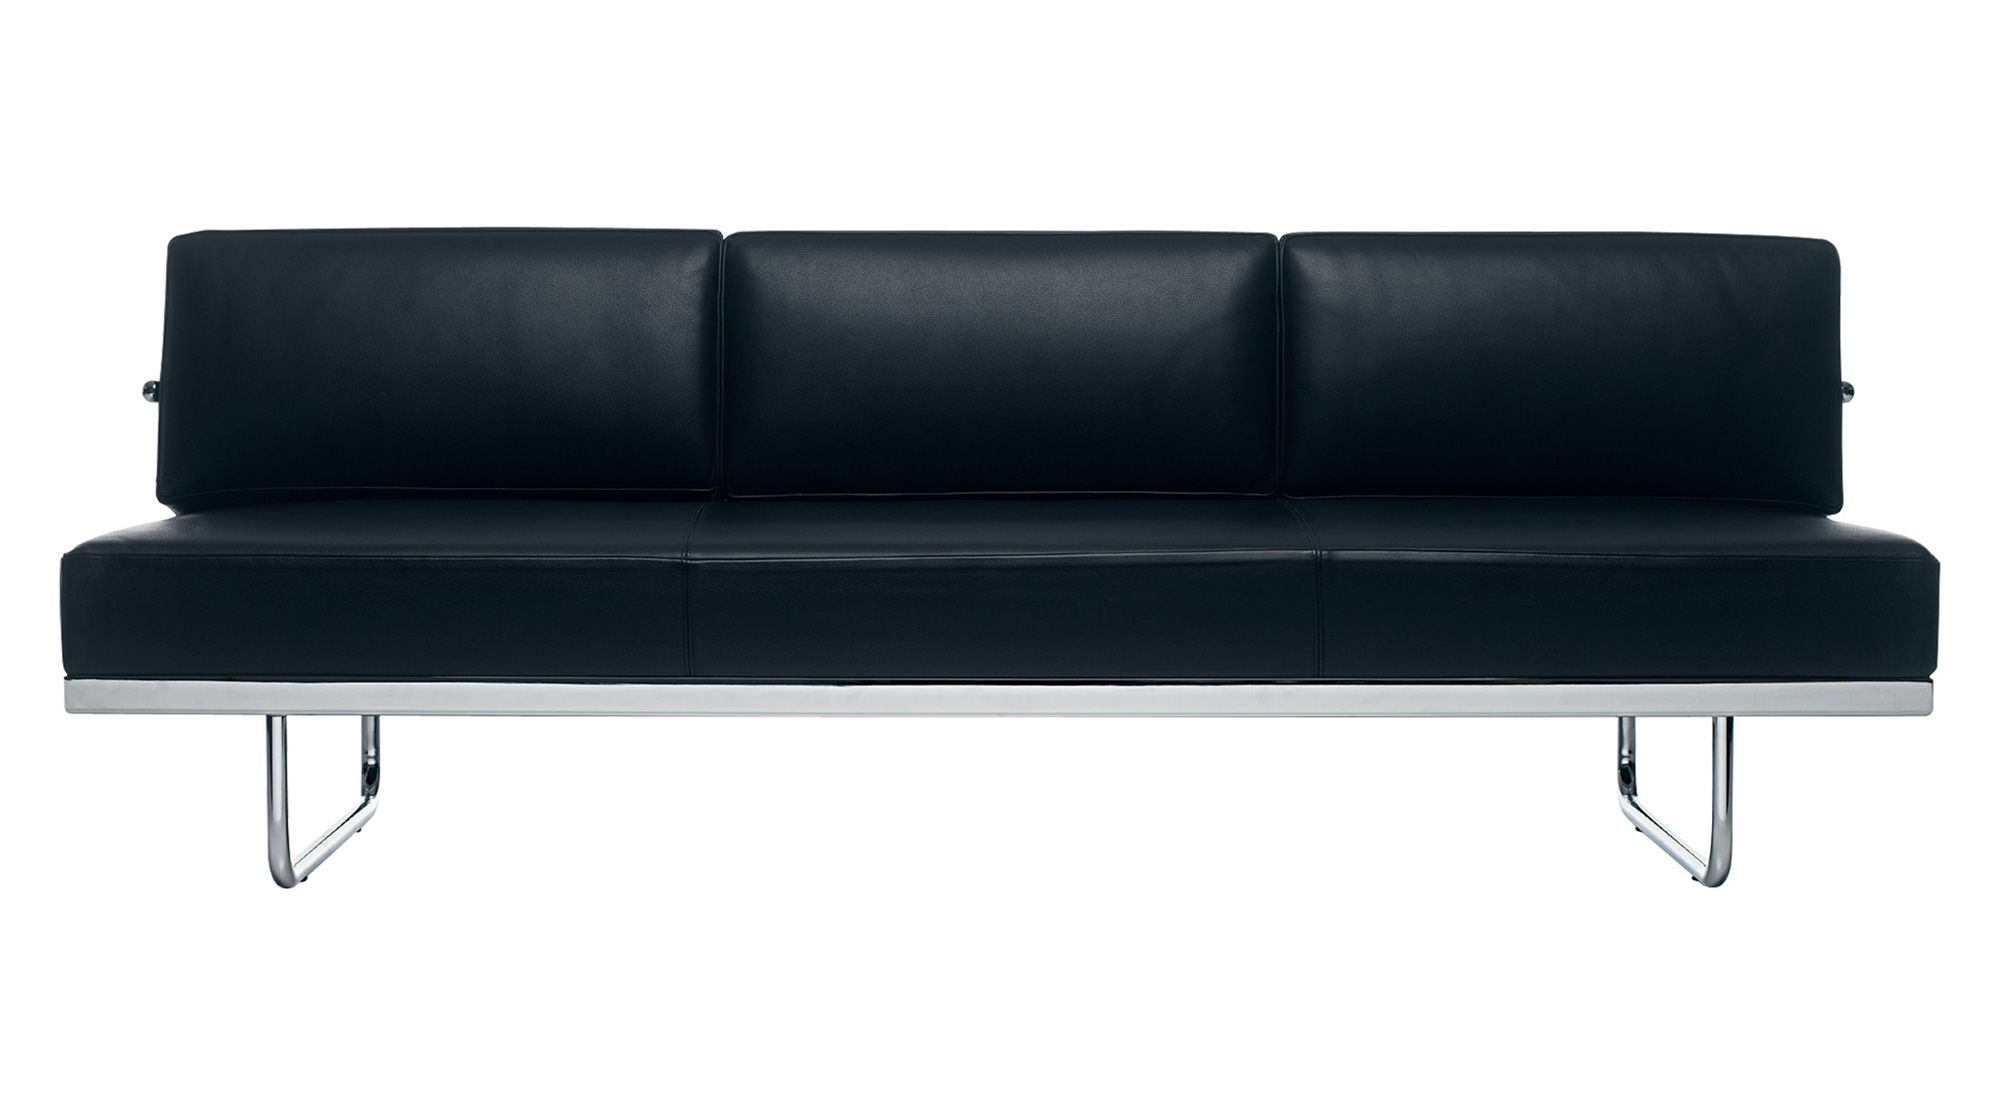 Lc5 F Sofa Designed By Le Corbusier For Cassina Furniture Pinterest Le Corbusier Sofas